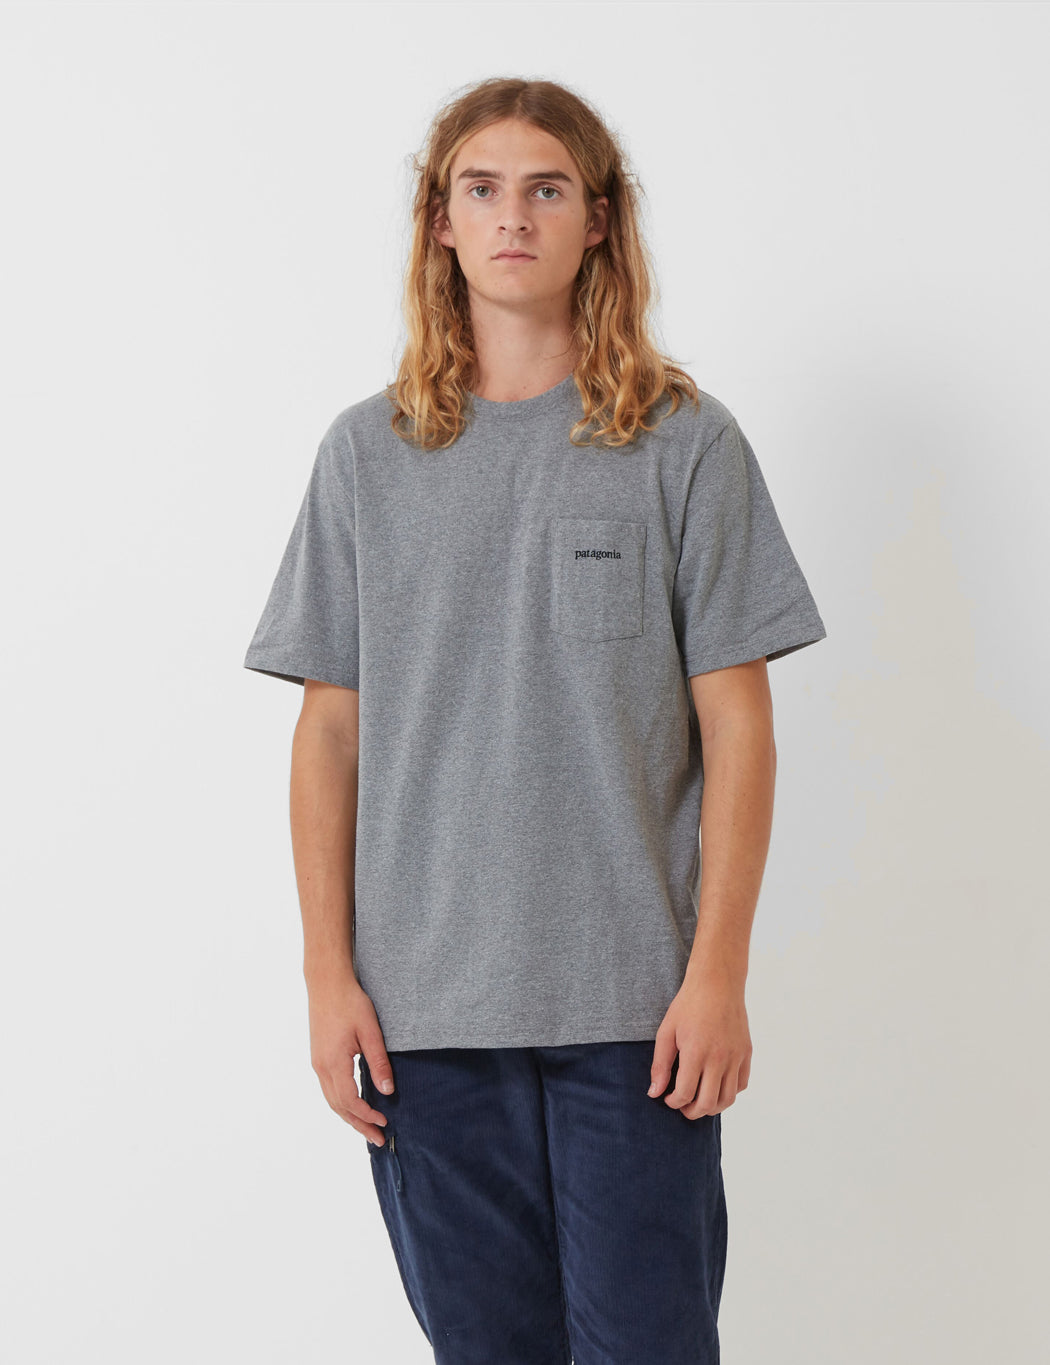 Patagonia Line Ridge Logo Pocket T-Shirt - Gravel Grey| URBAN EXCESS.